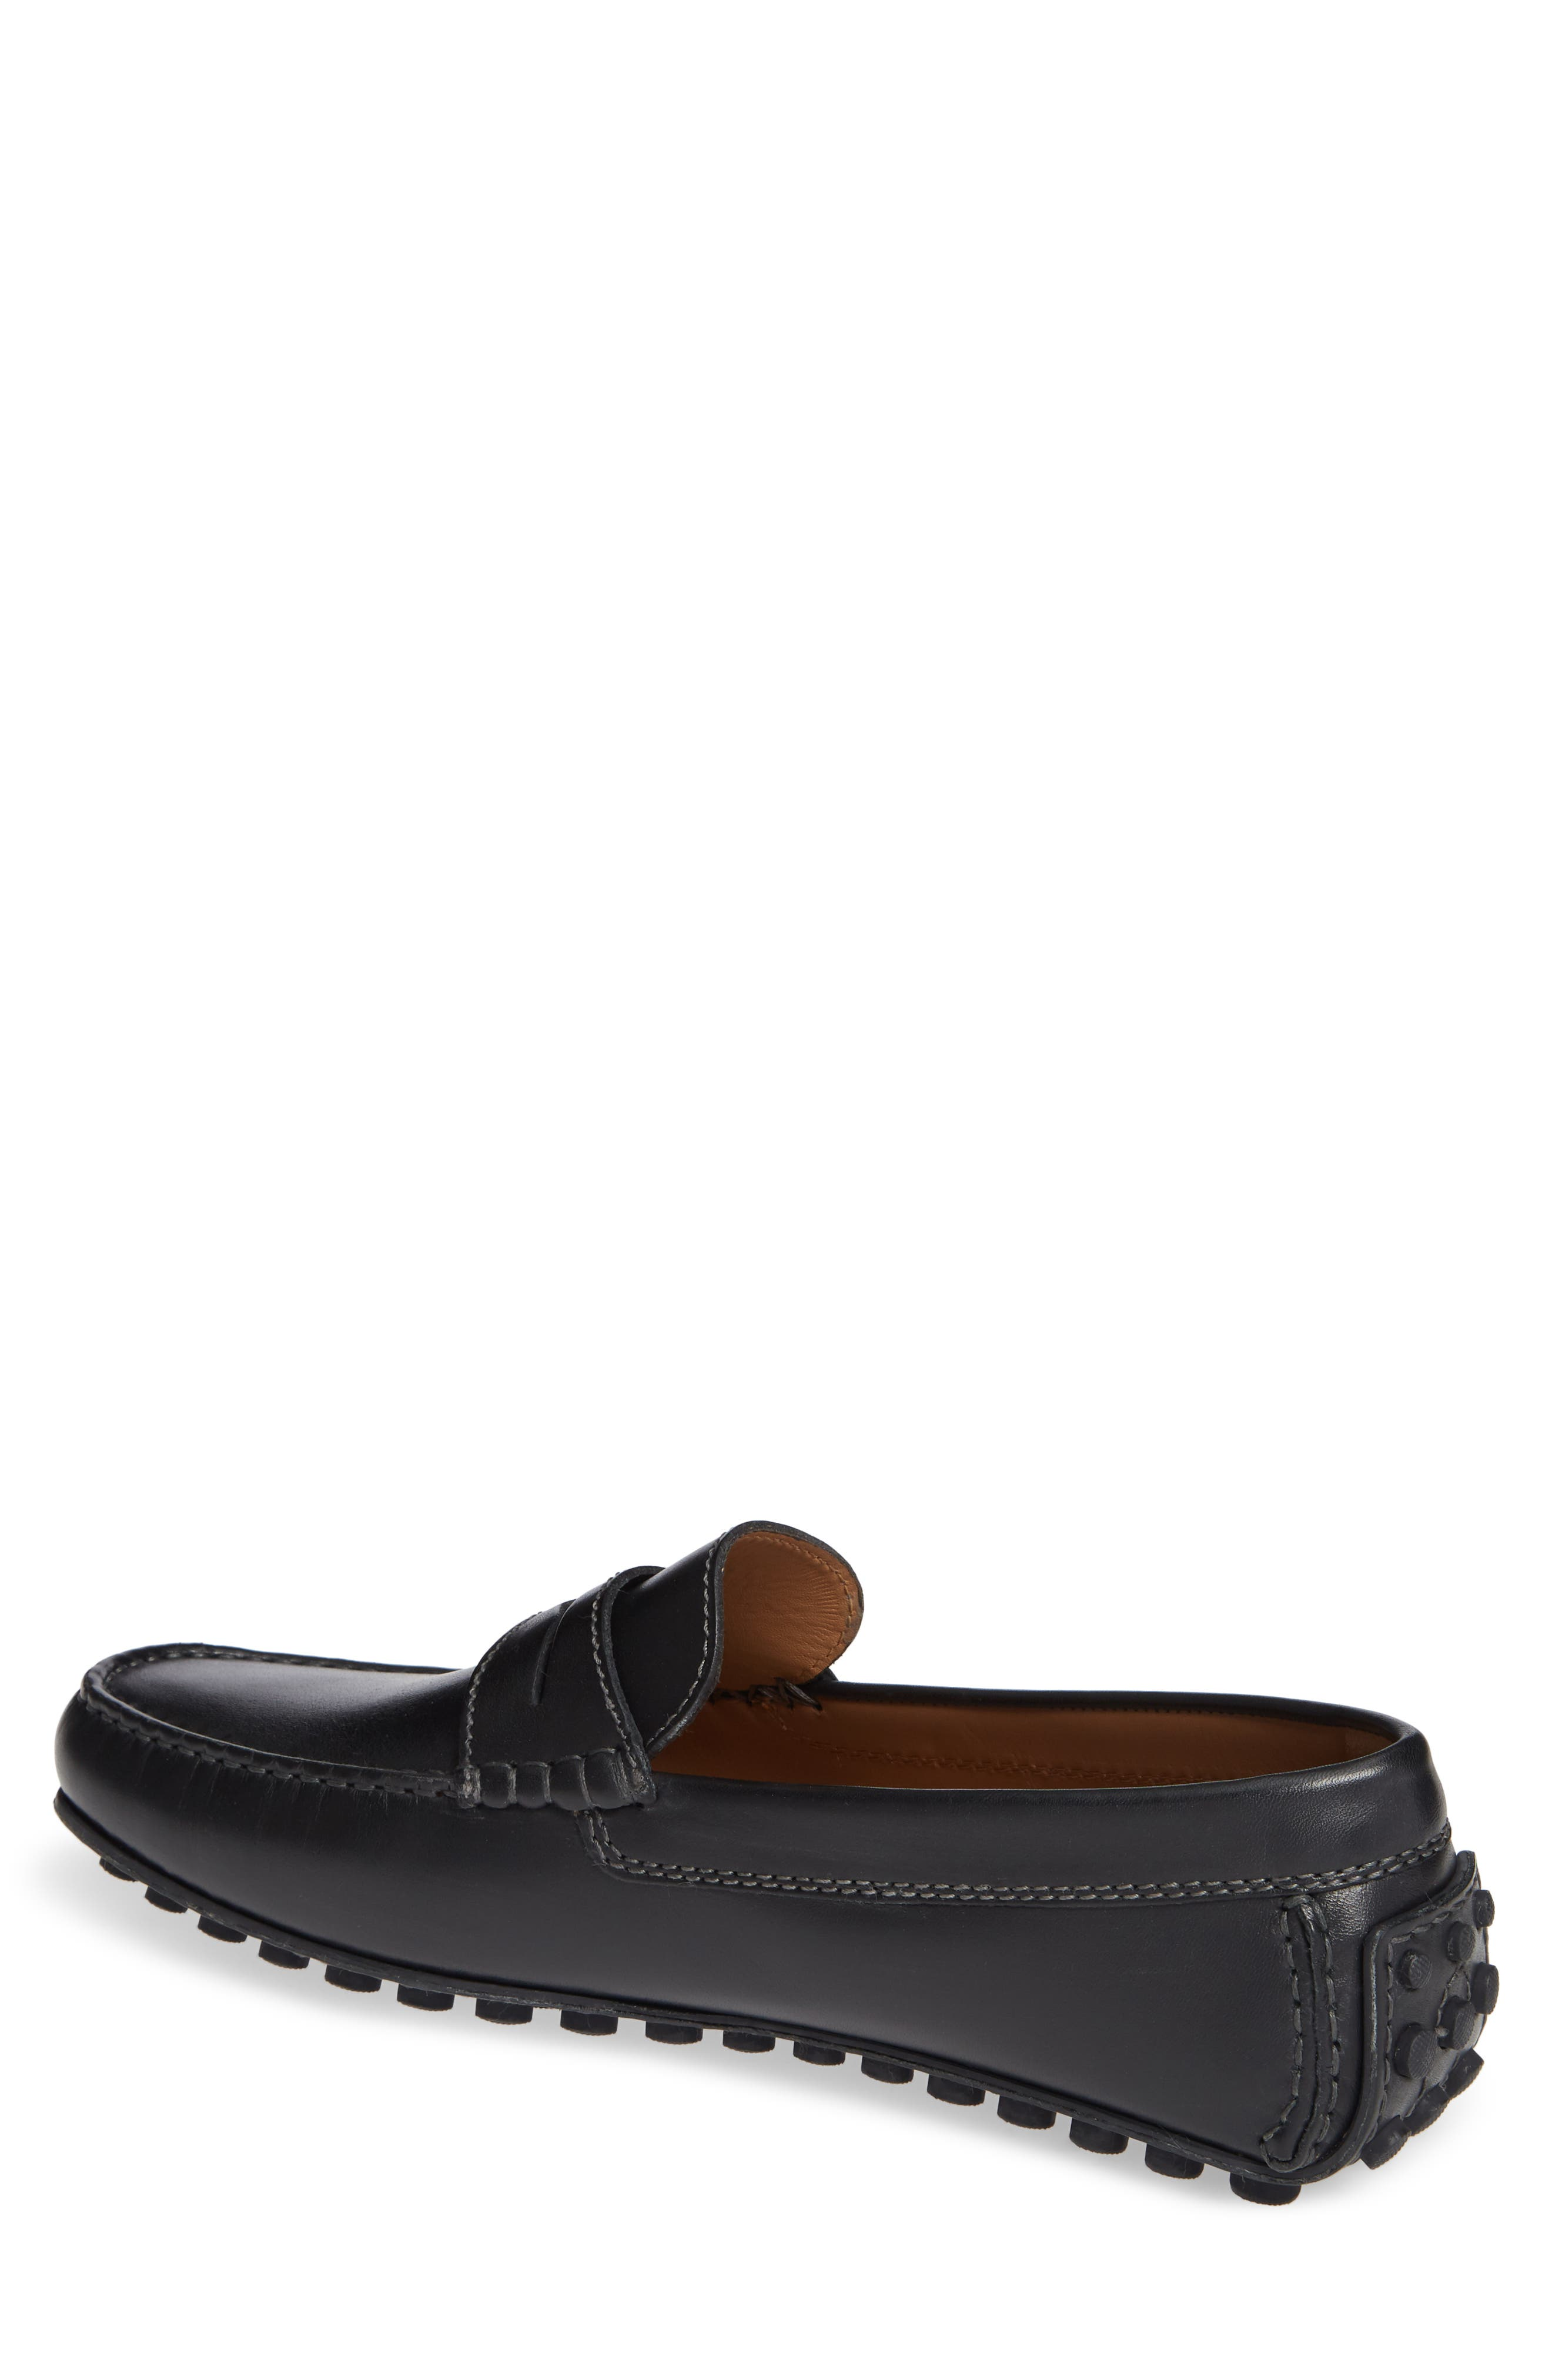 Le Mans Penny Driving Moccasin,                             Alternate thumbnail 2, color,                             BLACK LEATHER